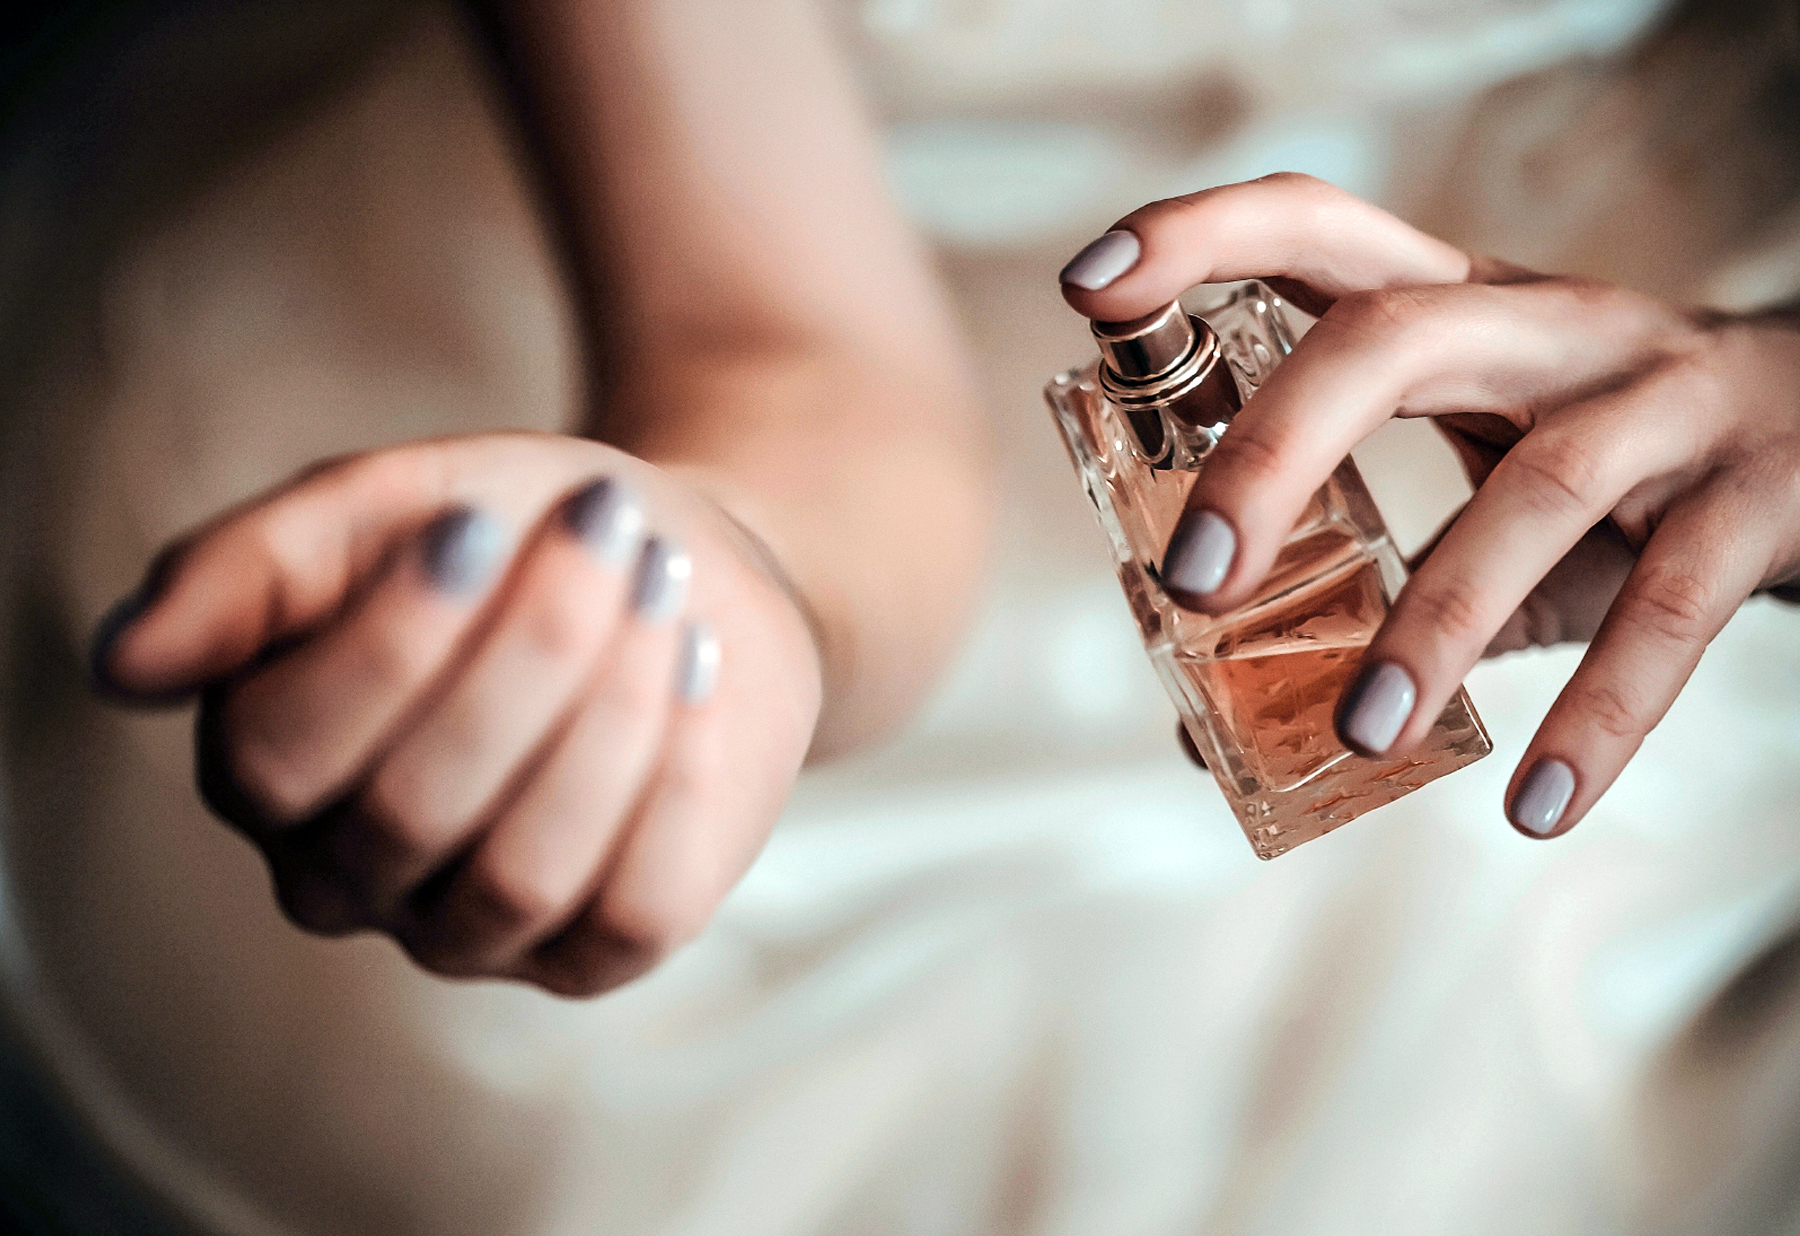 Where to Spray Perfume (Its Not Where You Think)